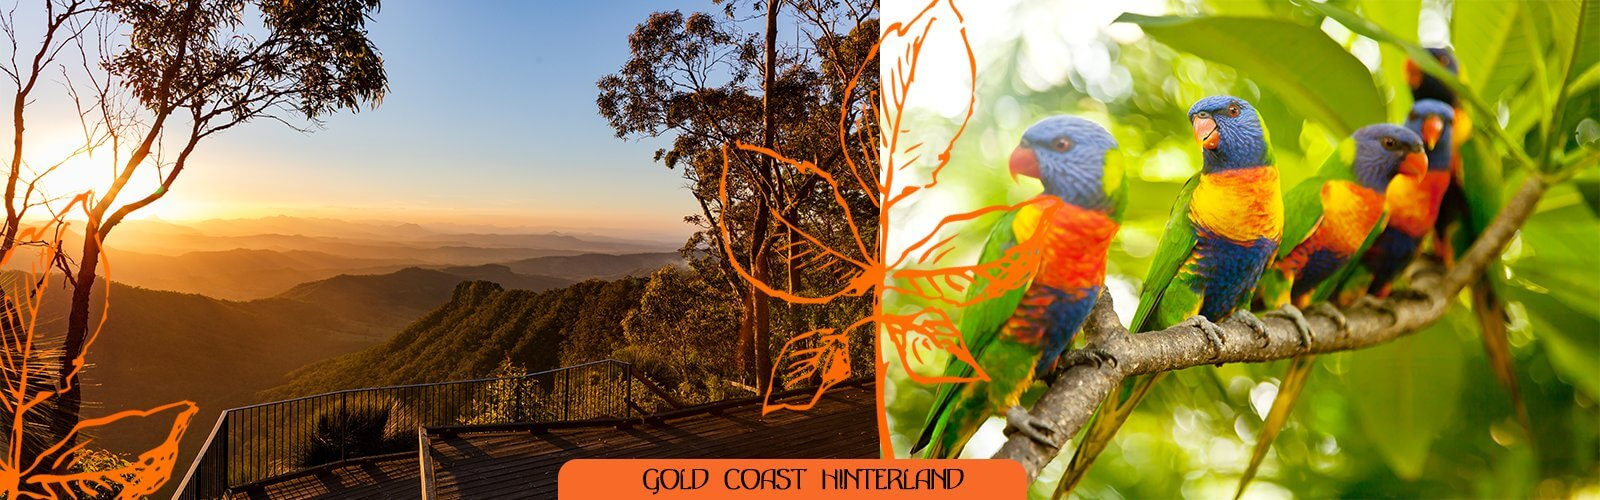 The Gold Coast hinterland, This undefined unit of area is known for its tourist attractions including resorts, rainforest, lookouts, national parks, its diversity of fauna and flora and as a green backdrop to the coastal strip.